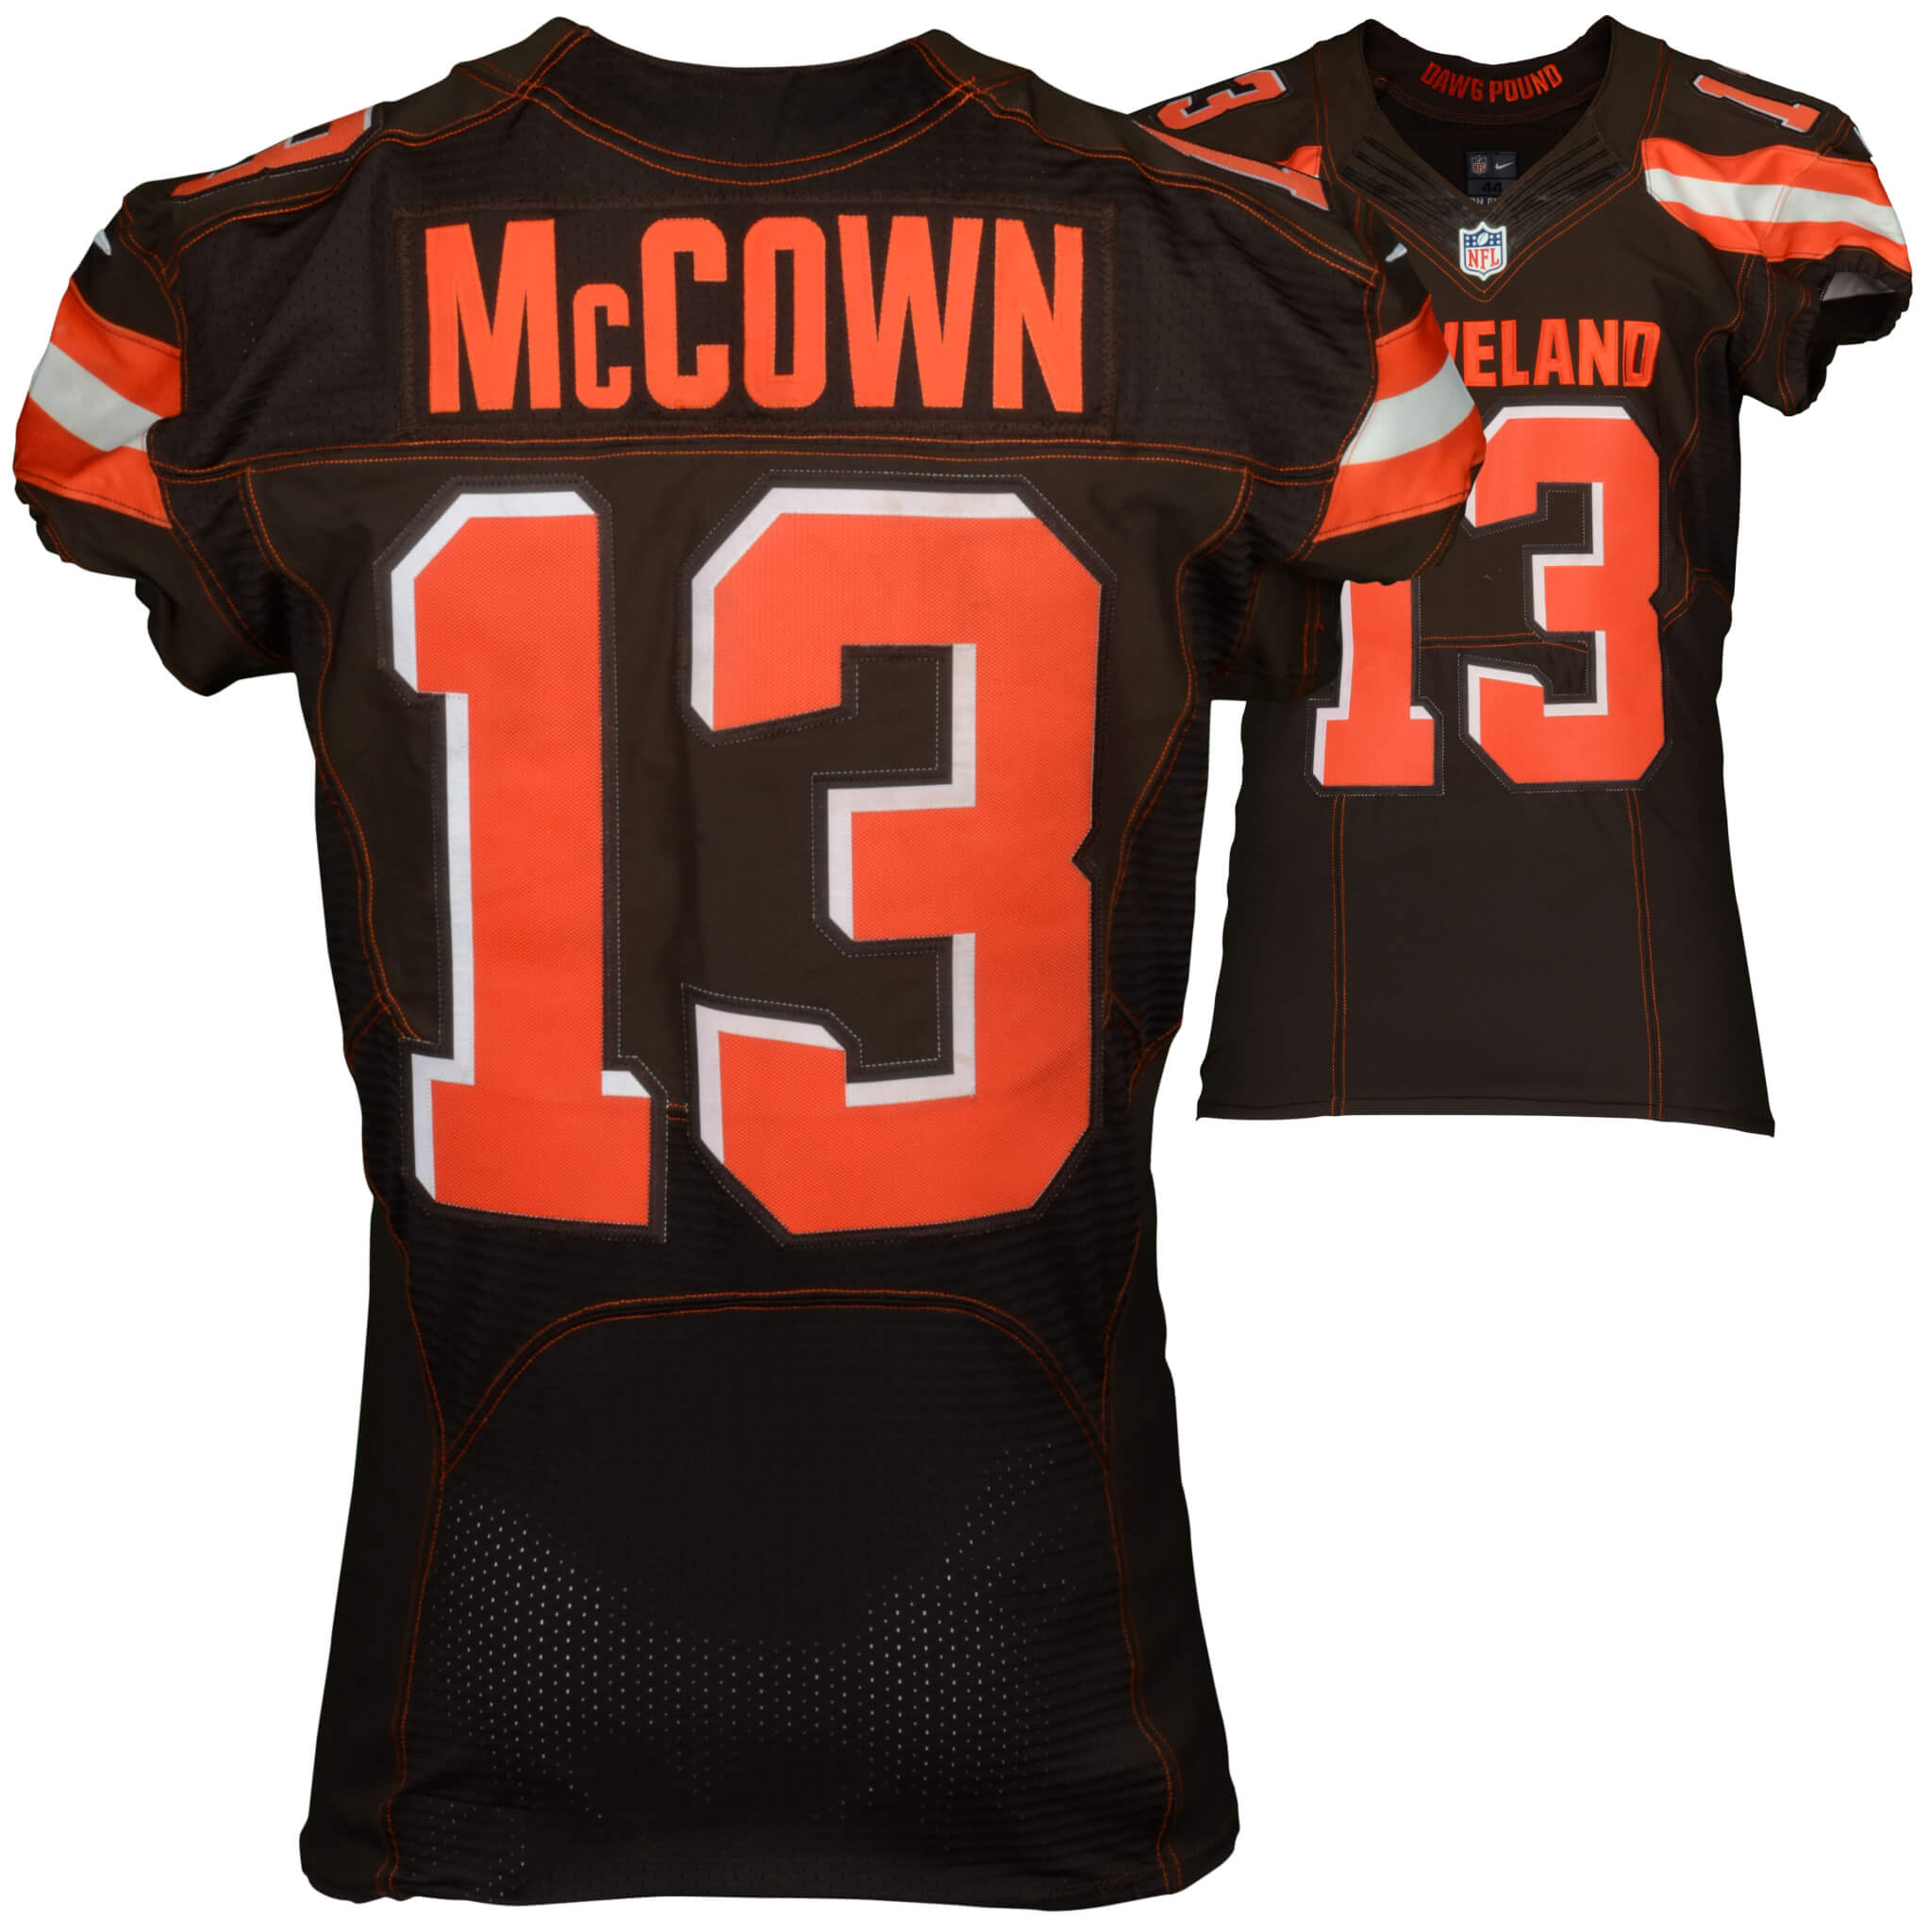 cdfa7de074c ... Jersey - Brown September 13, 2015 New York Jets vs. Cleveland Browns Josh  McCown Game-Used ...